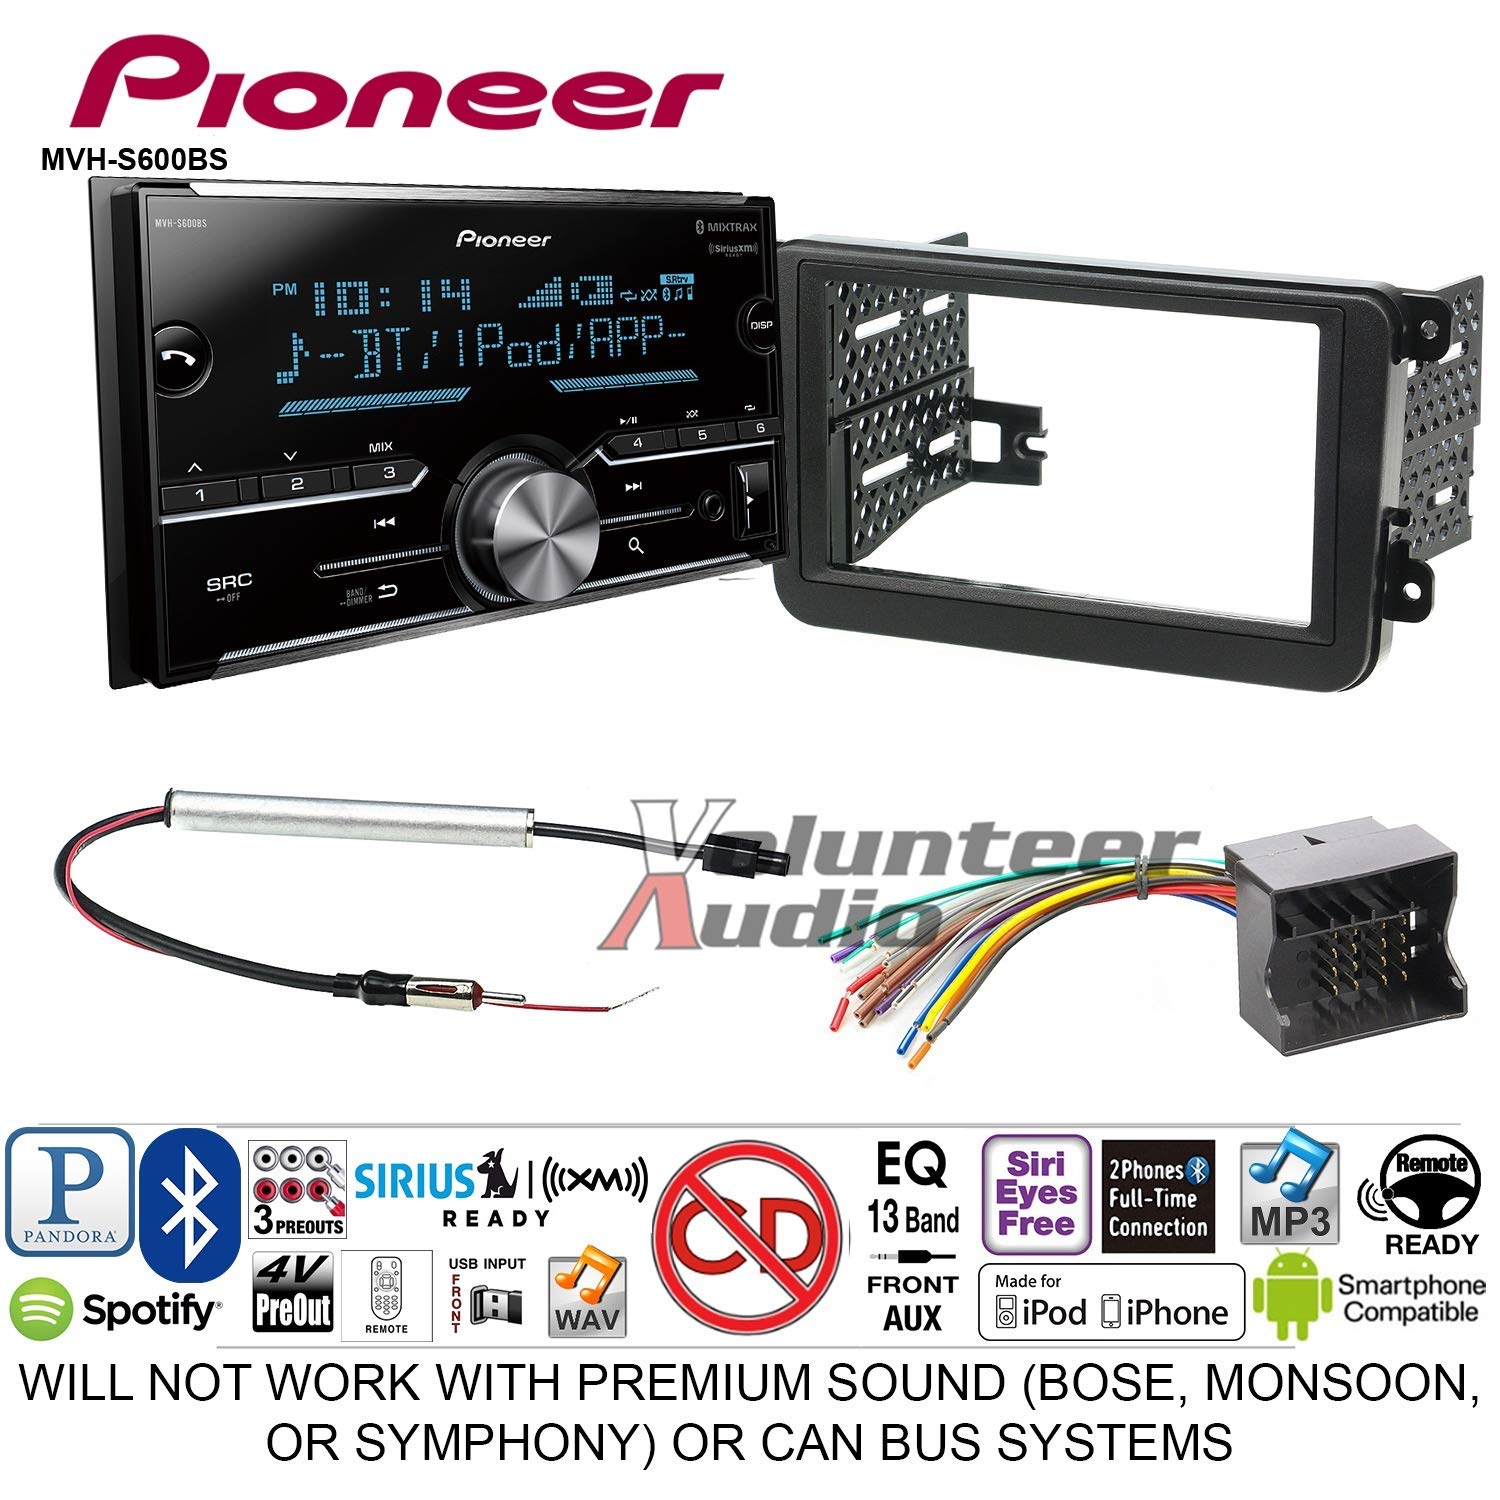 Pioneer MVH-S600BS Double Din Radio Install Kit with Bluetooth USB/AUX Fits 2012-2013 Volkswagen Beetle, 2010-2013 Golf, 2006-2013 Jetta